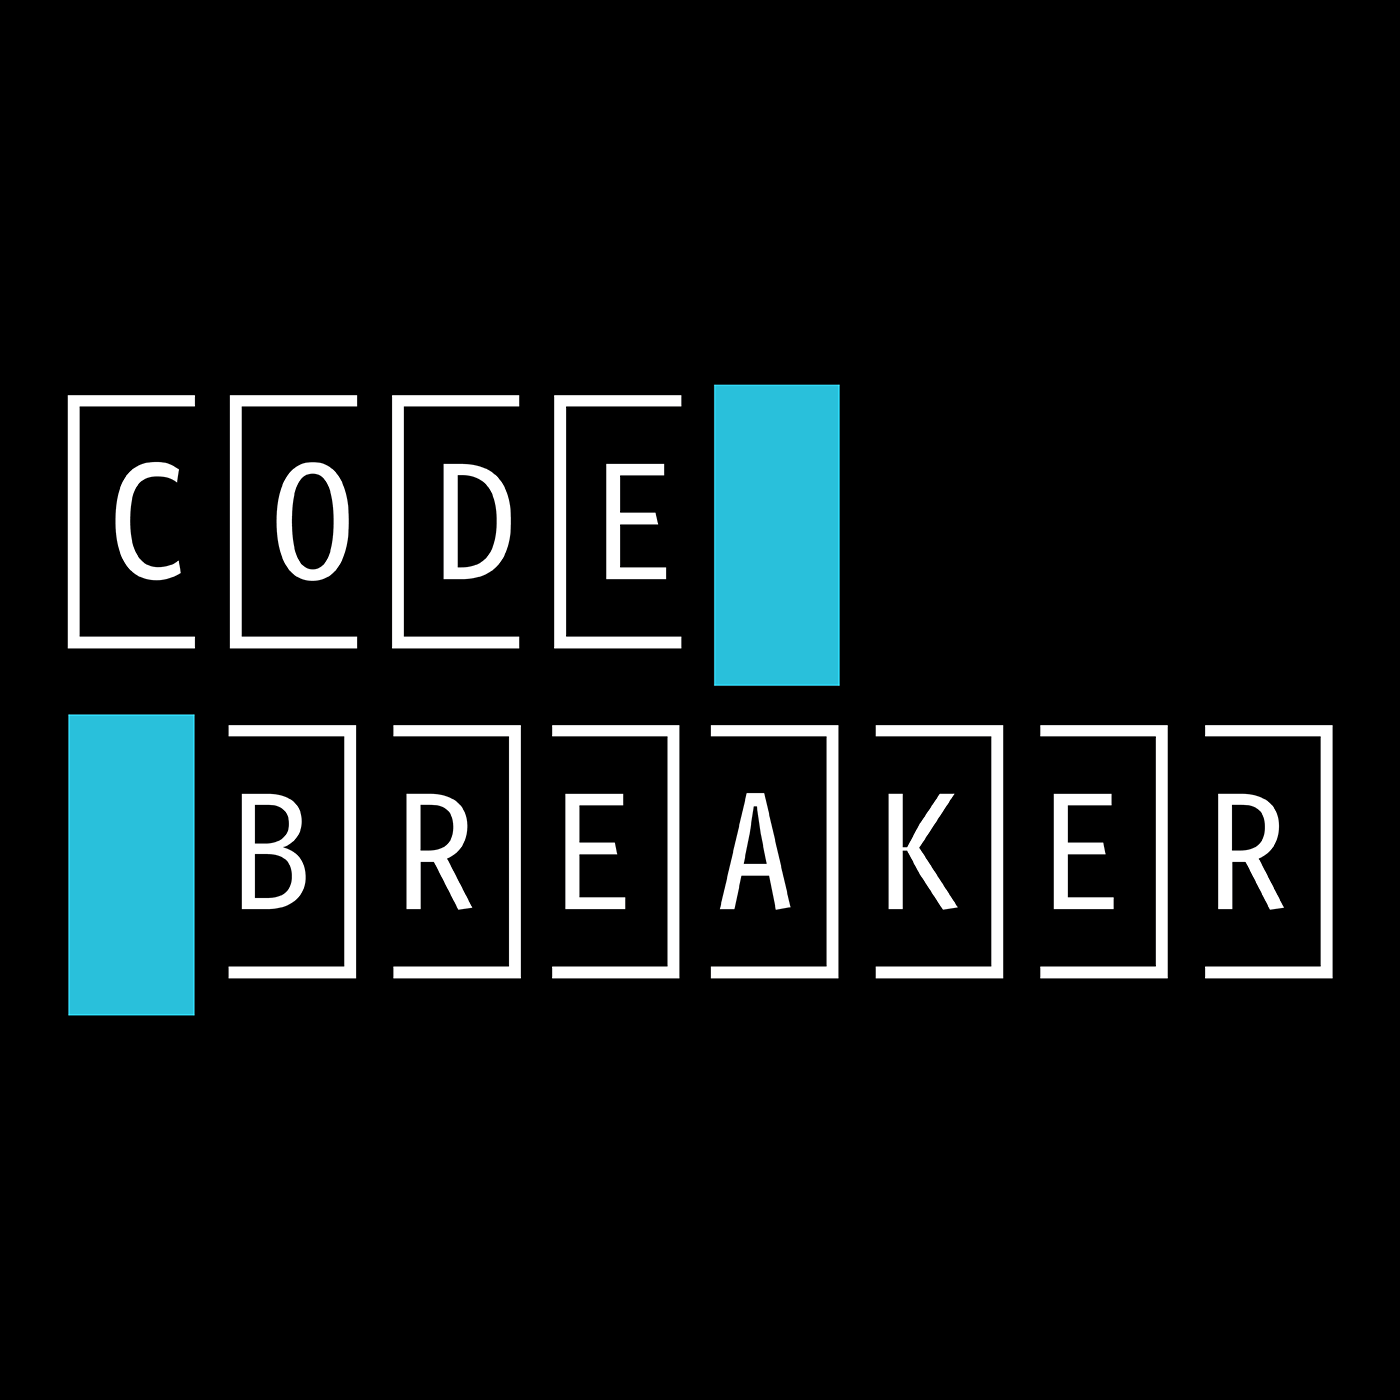 Codebreaker, by Marketplace and Tech Insider™